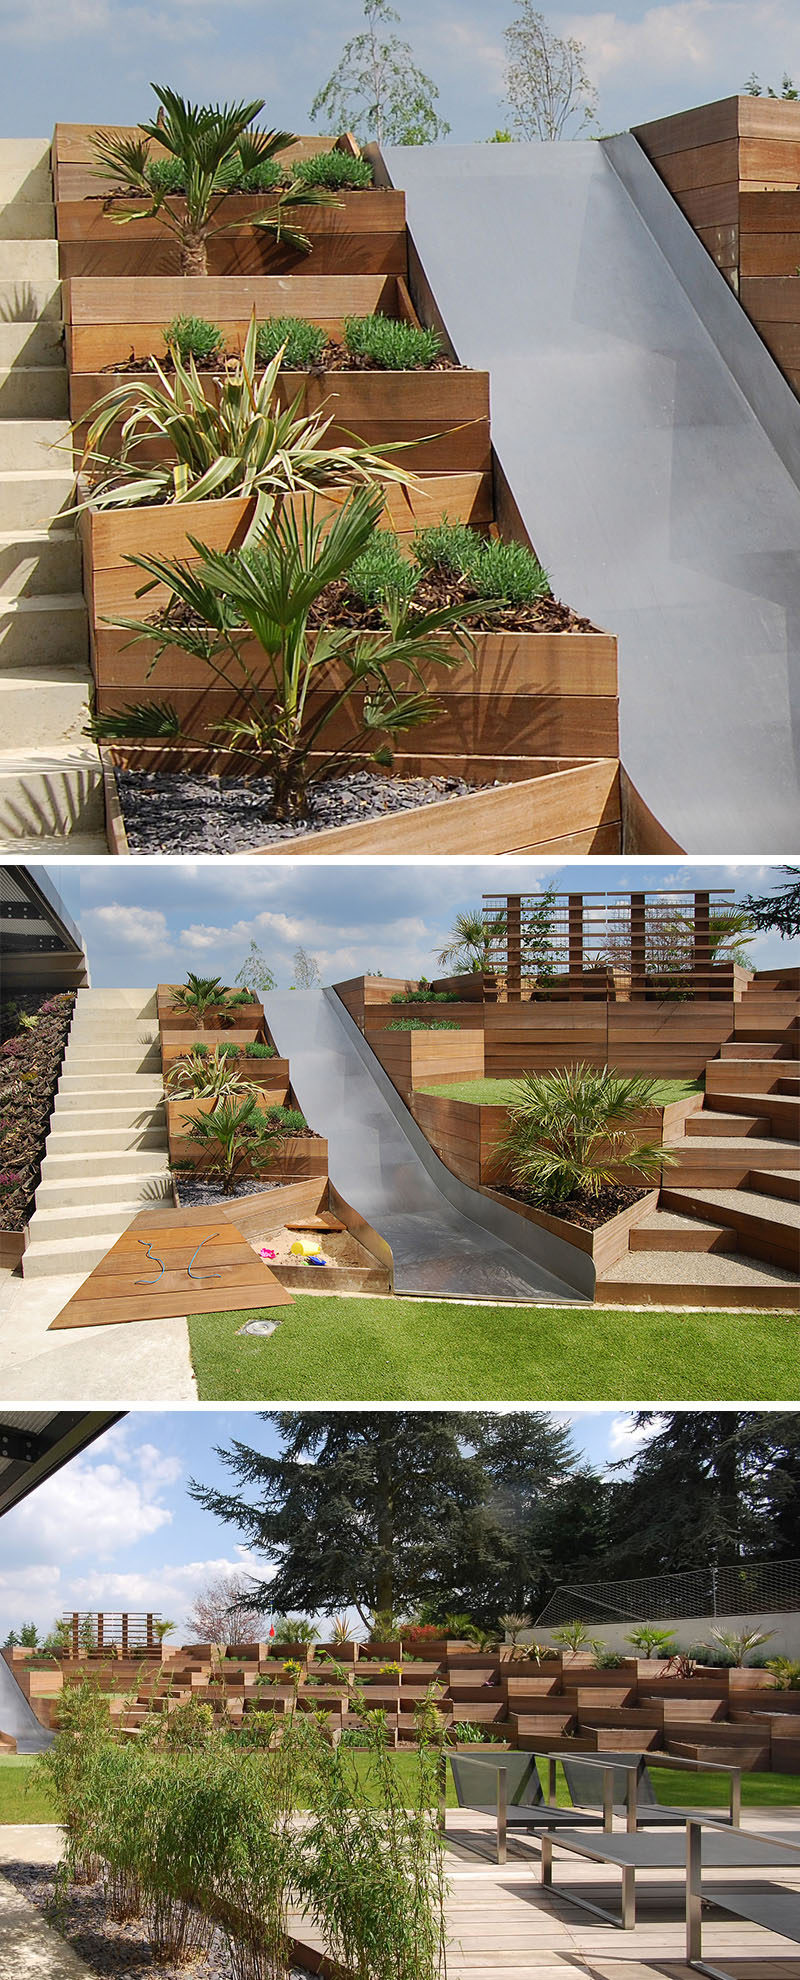 12 Ideas For Including Built-In Wooden Planters In Your Outdoor Space // This backyard with a slide, makes use of triangular wooden planters to deal with the slope of the yard. #WoodPlanters #BuiltInPlanters #Landscaping #LandscapeDesign #BackyardPlanters #YardIdeas